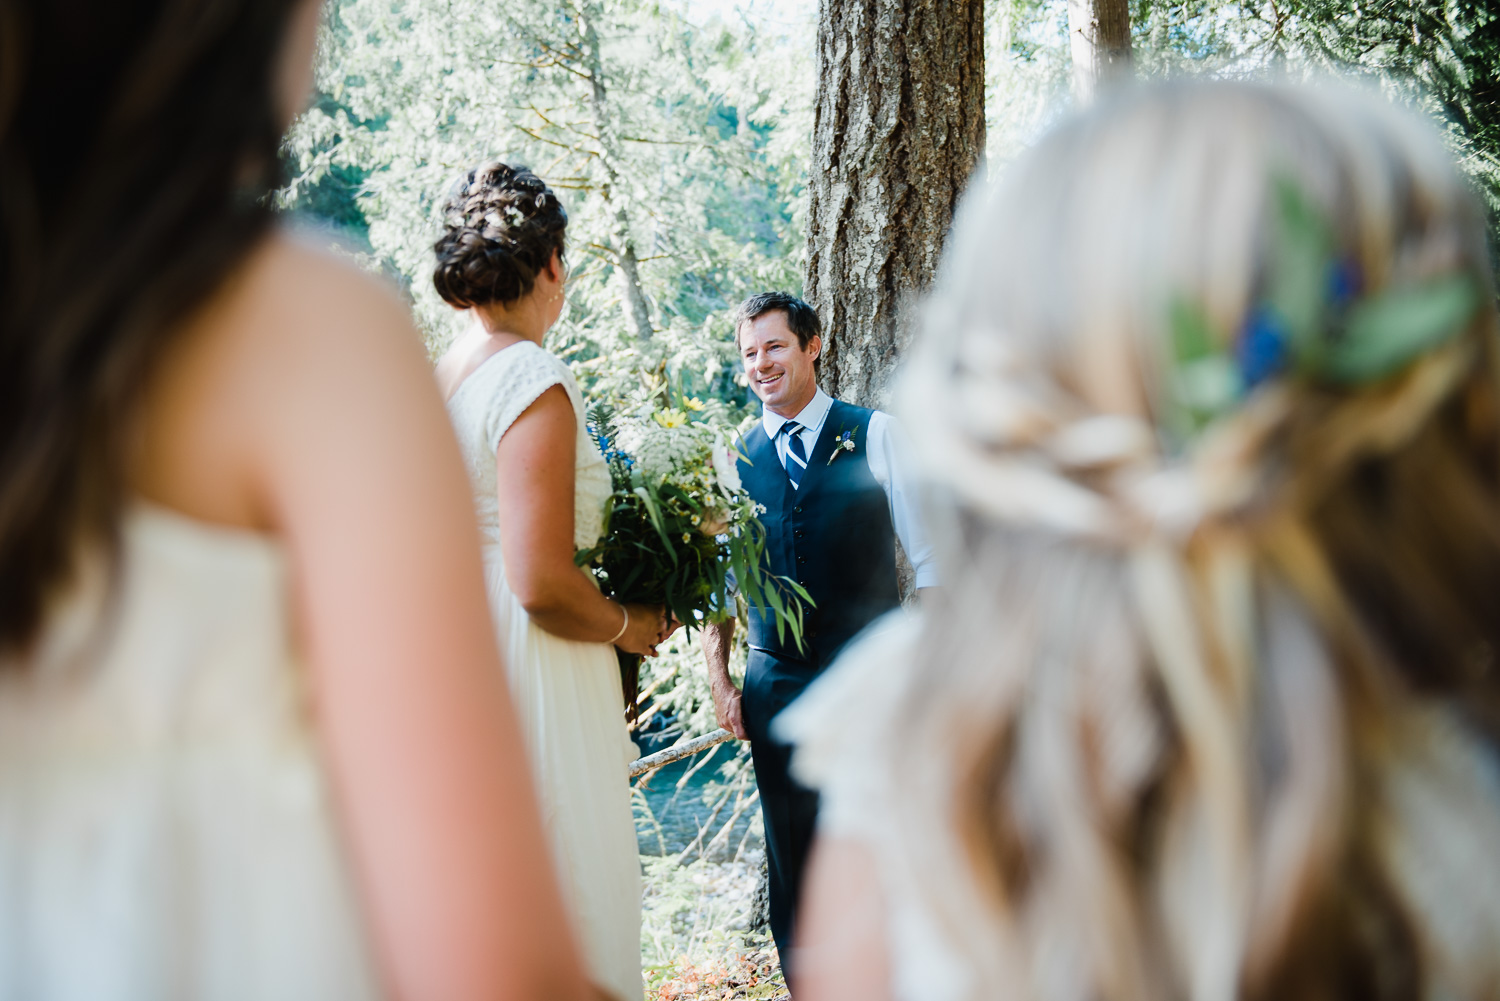 Backyard Wedding-24.jpg